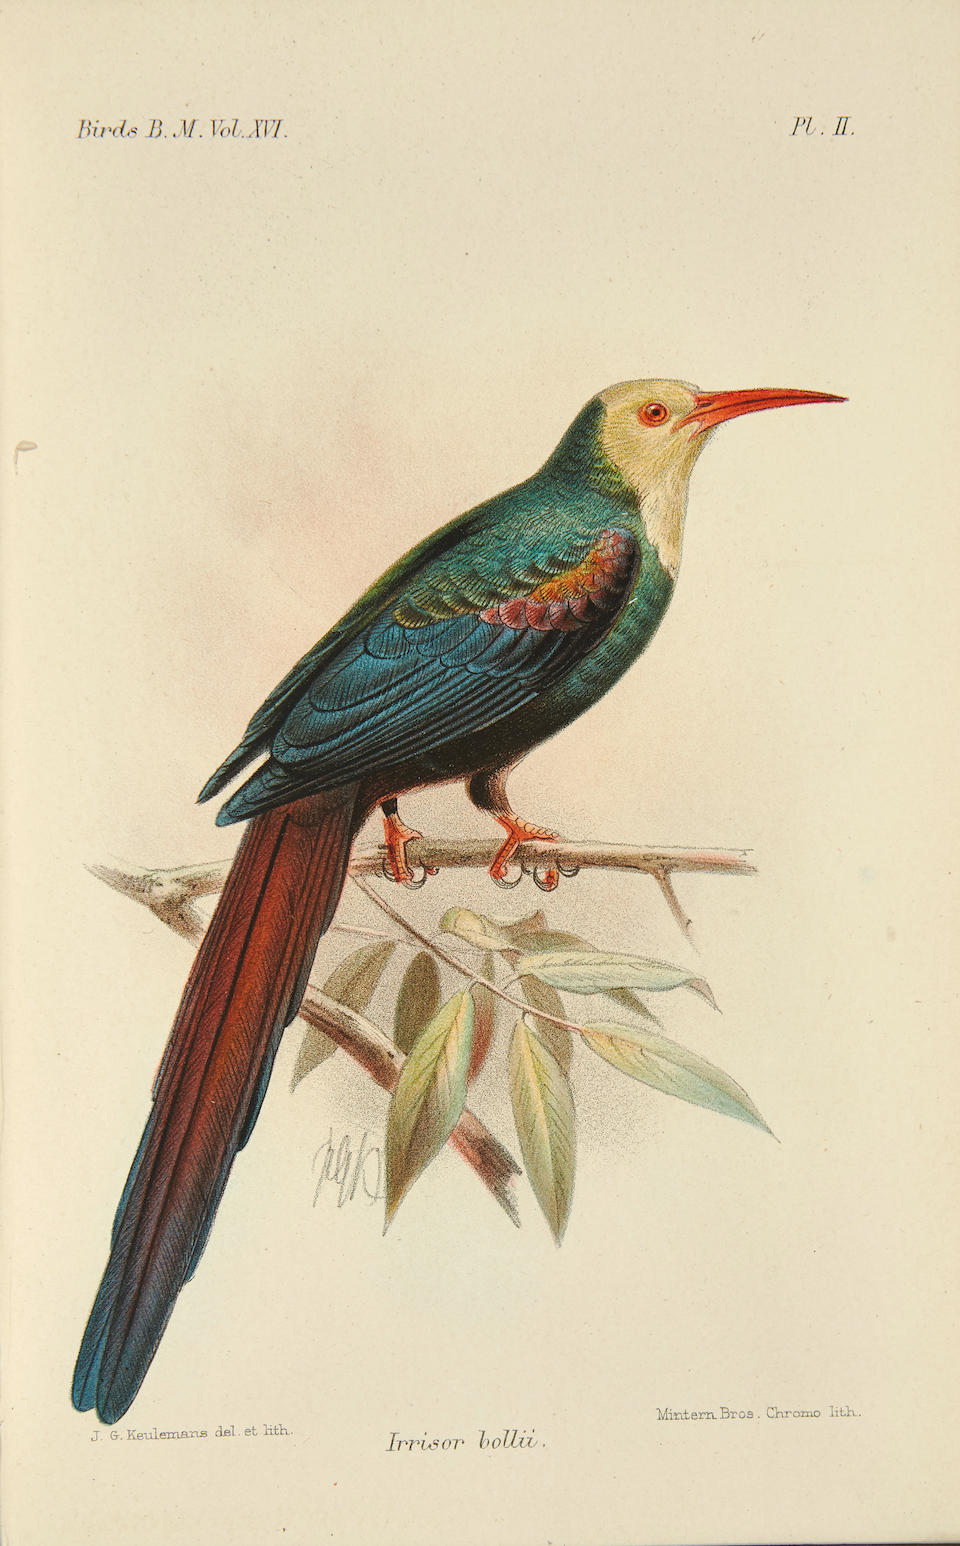 BRITISH MUSEUM ORNITHOLOGY COLLECTION. Six works on ornithology published by the British Museum: 1. SHARPE, RICHARD BOWDLER. 1847-1909. ET. AL. Catalogue of Birds in the British Museum.